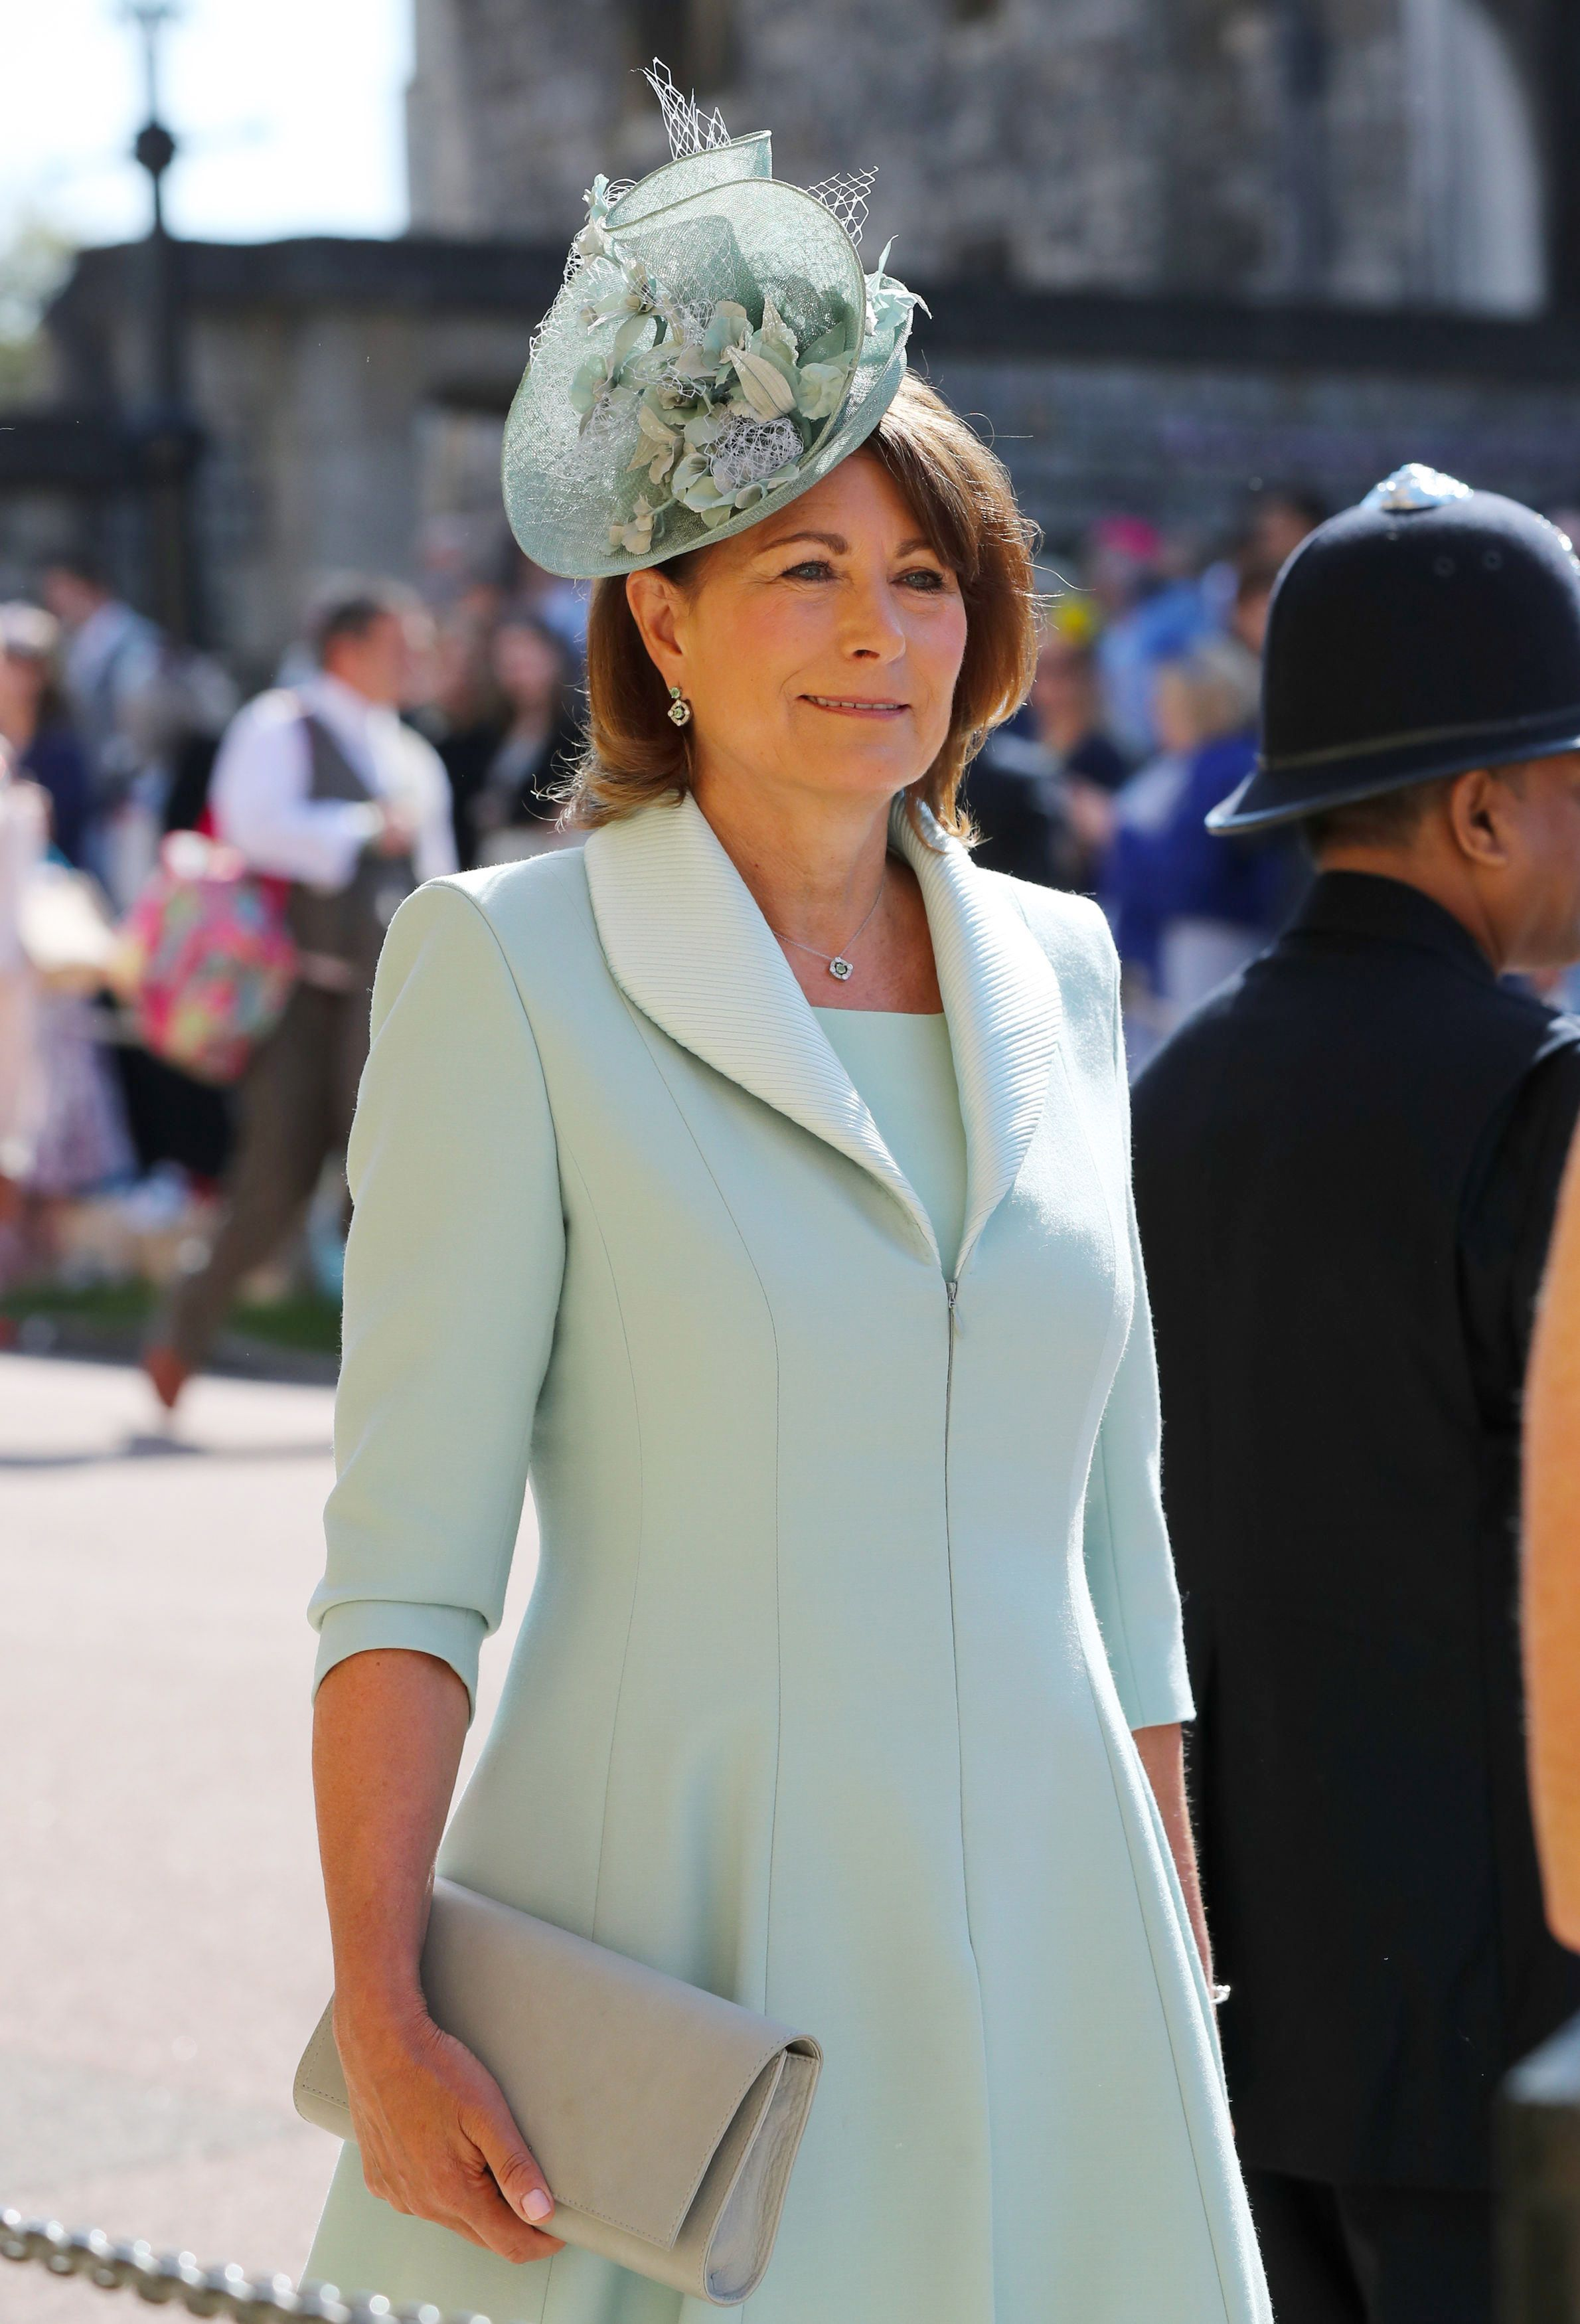 Dorable Carole Middleton Wedding Outfit Sketch - Wedding Dress Ideas ...